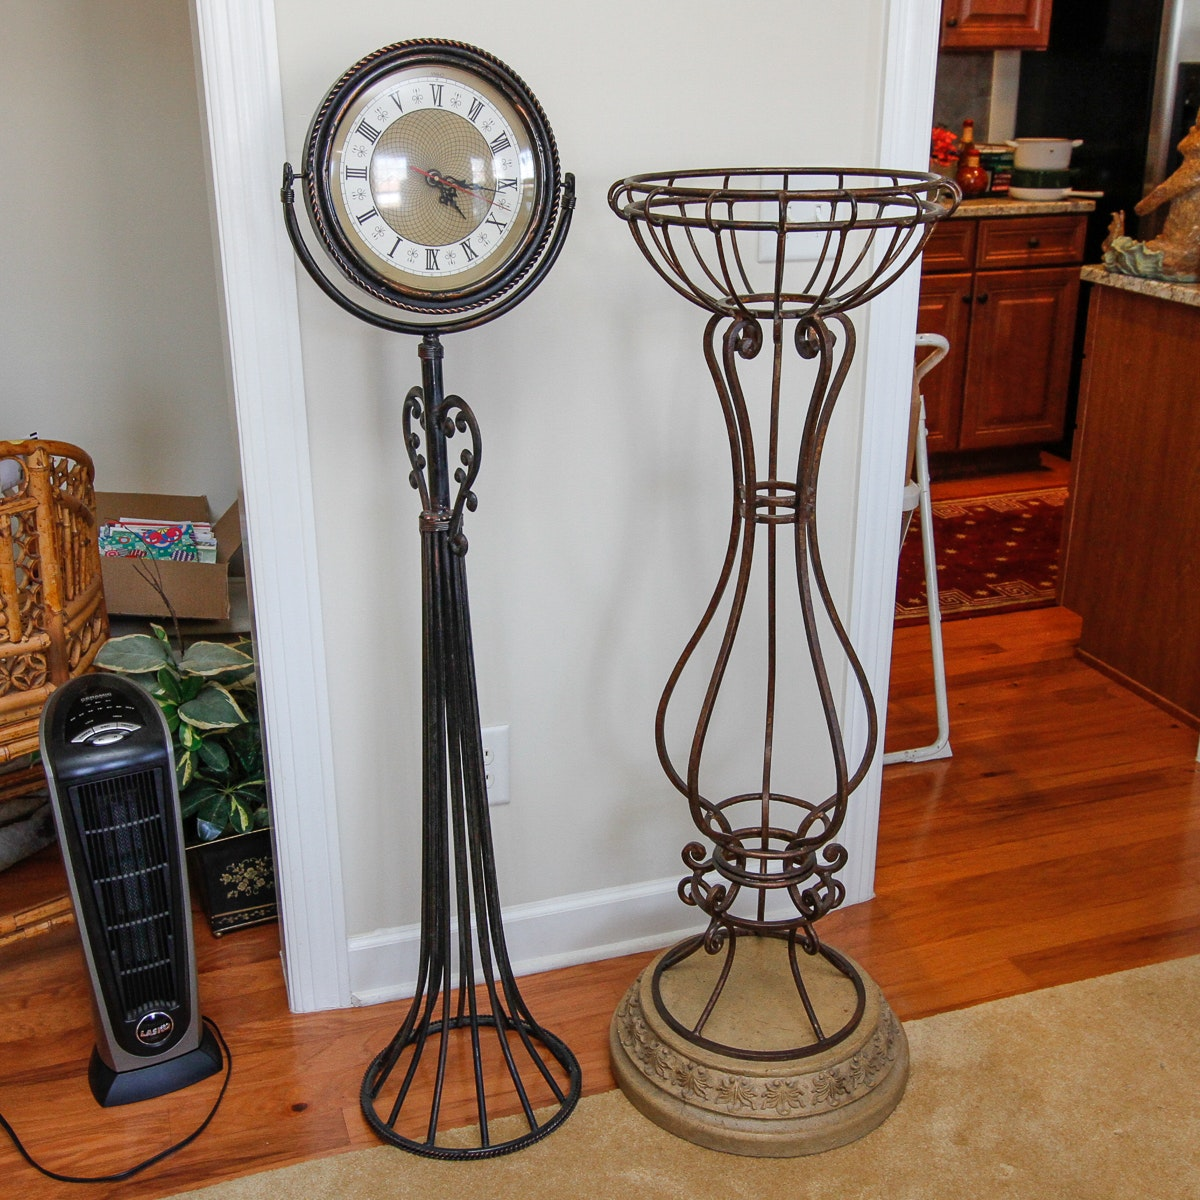 Wrought Metal Plant Stand and Floor Clock